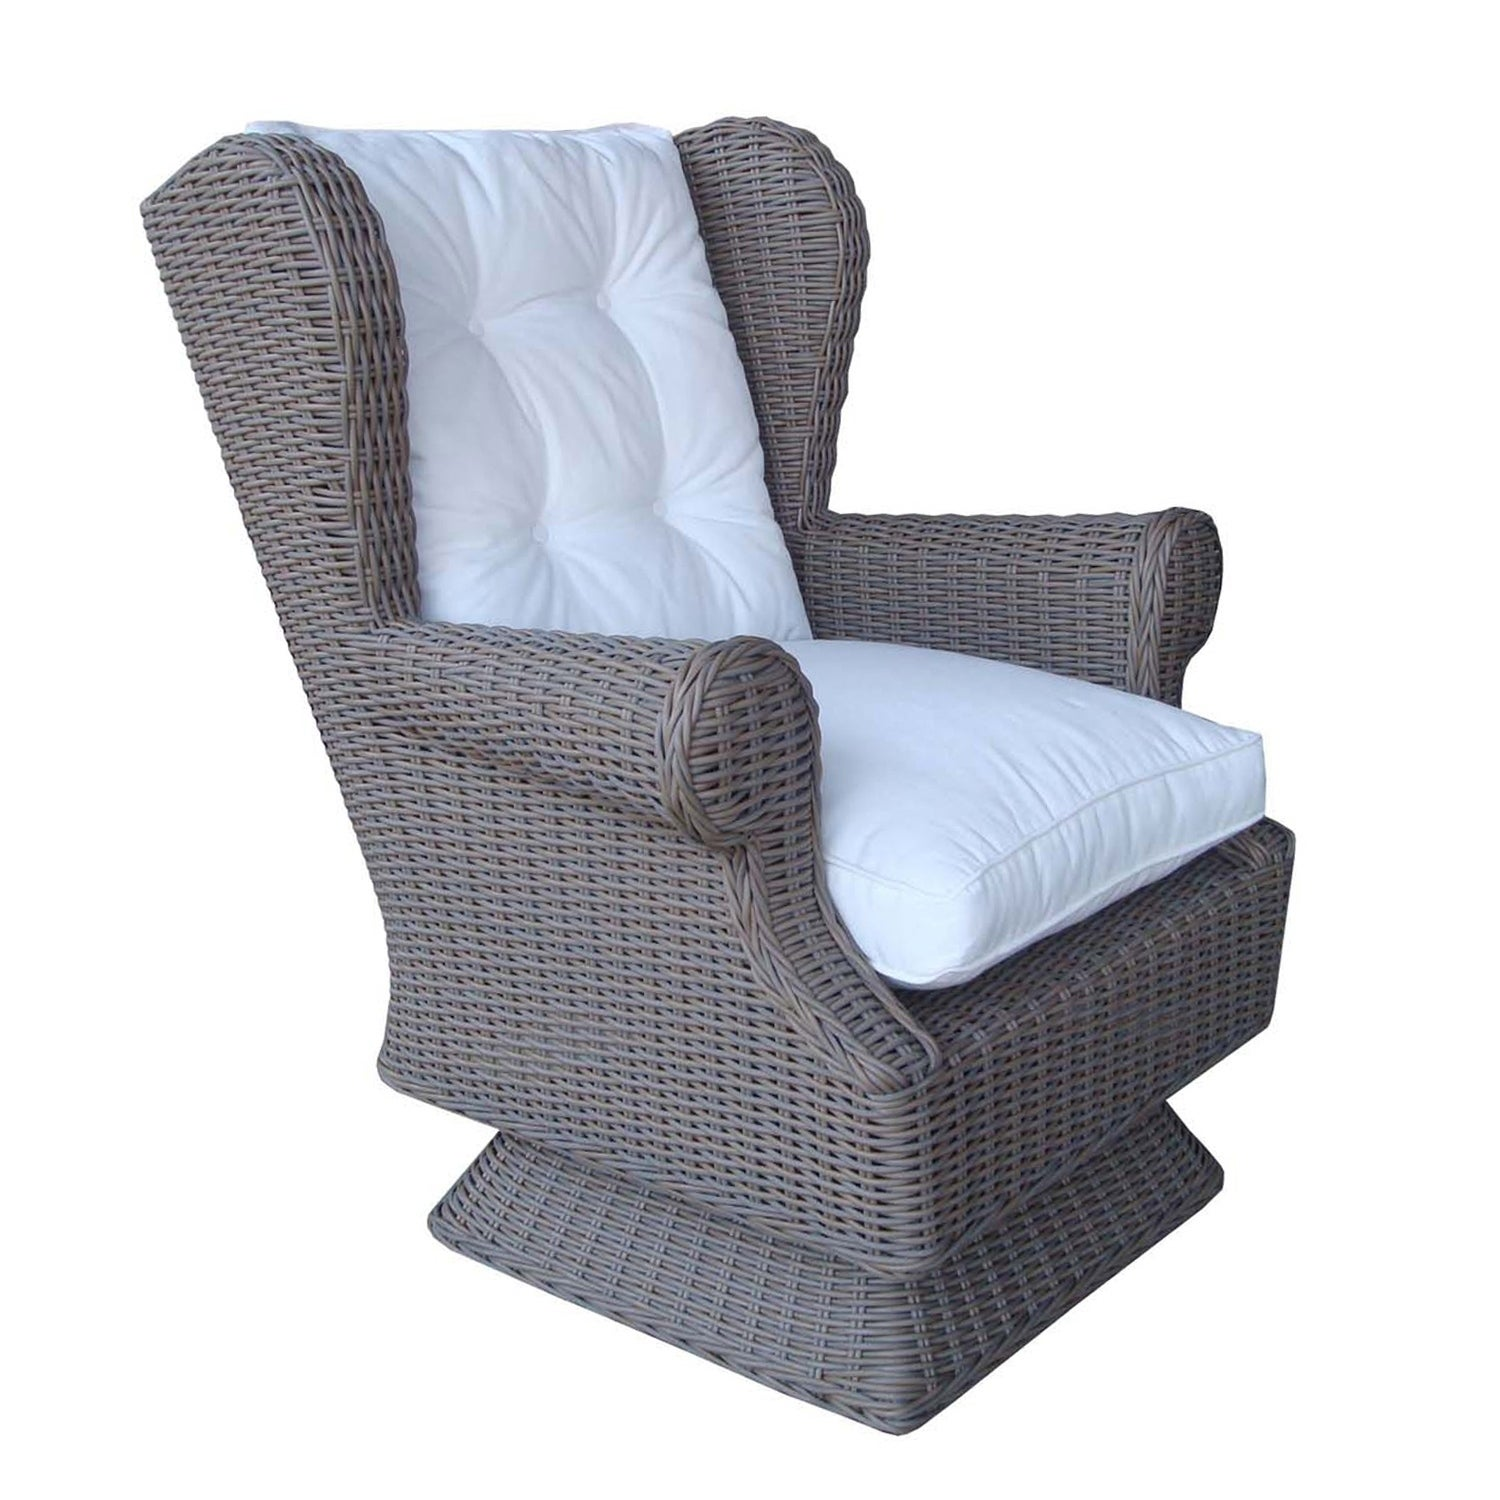 Shop Padmau0027s Plantation Vintage Kubo Grey Outdoor All Weather Wicker Swivel  And Rocking Chair   Free Shipping Today   Overstock.com   16849923